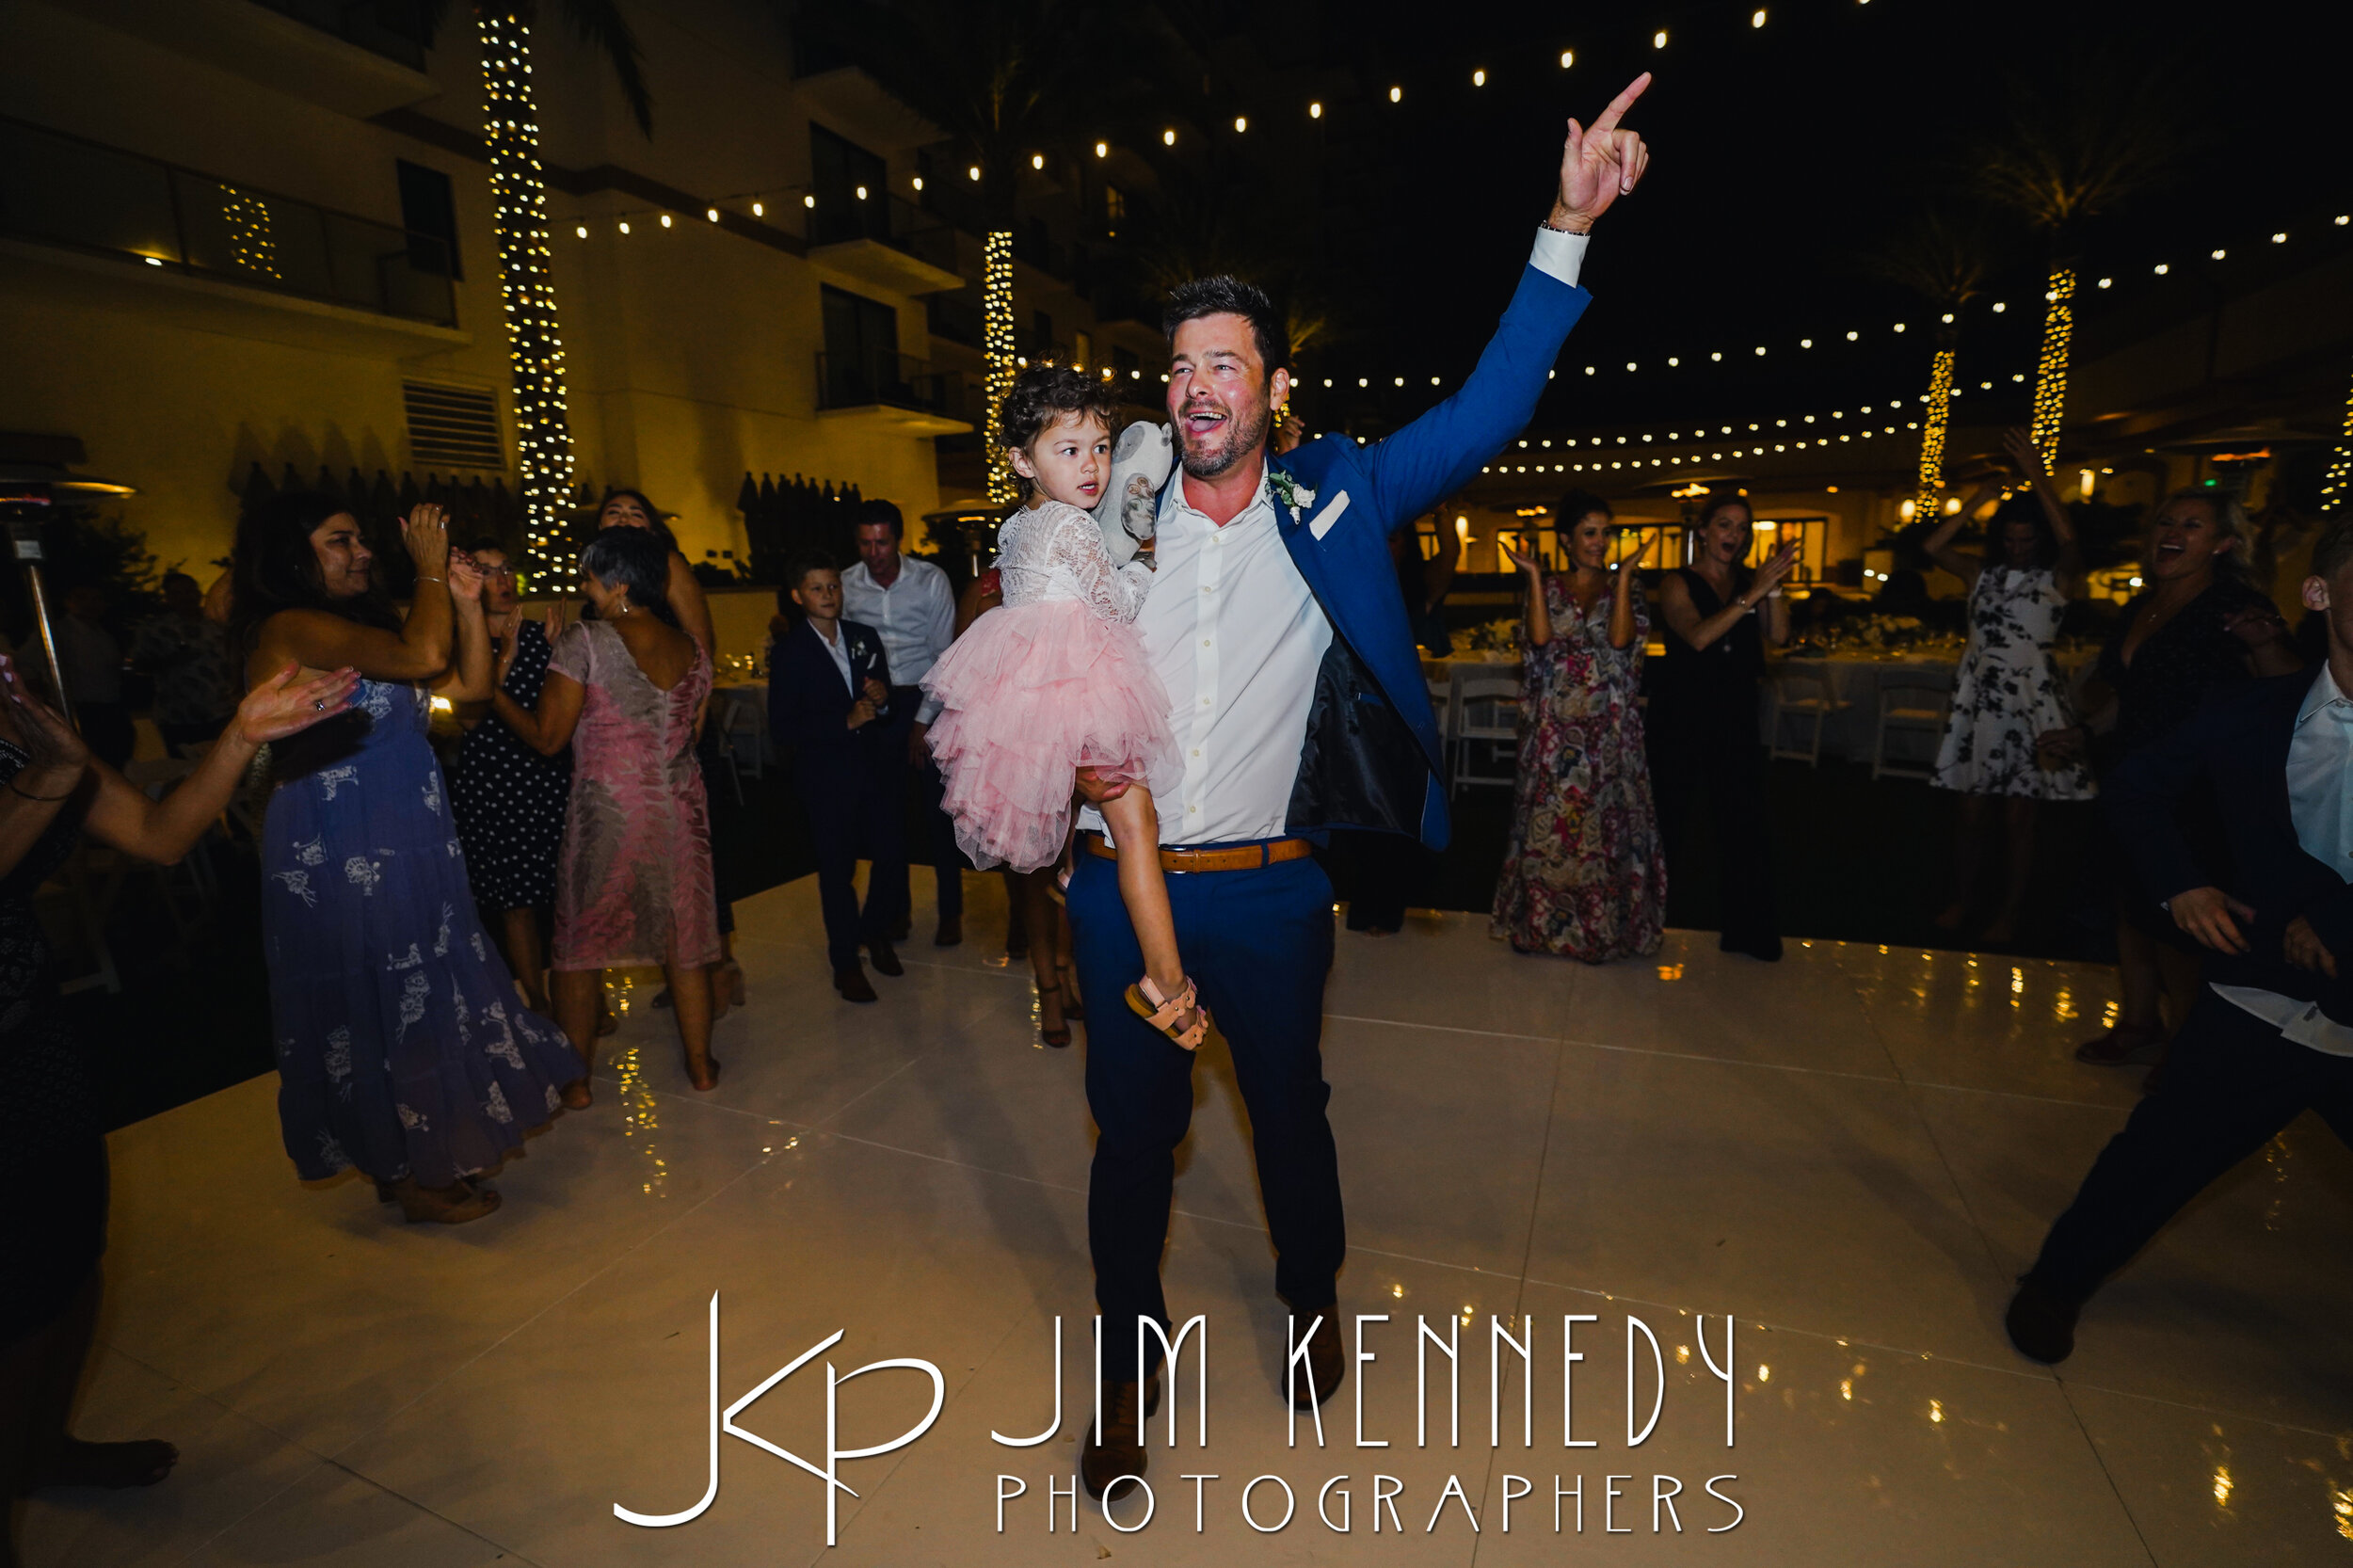 waterfront-hilton-wedding-jim-kennedy-photographers_0202.JPG